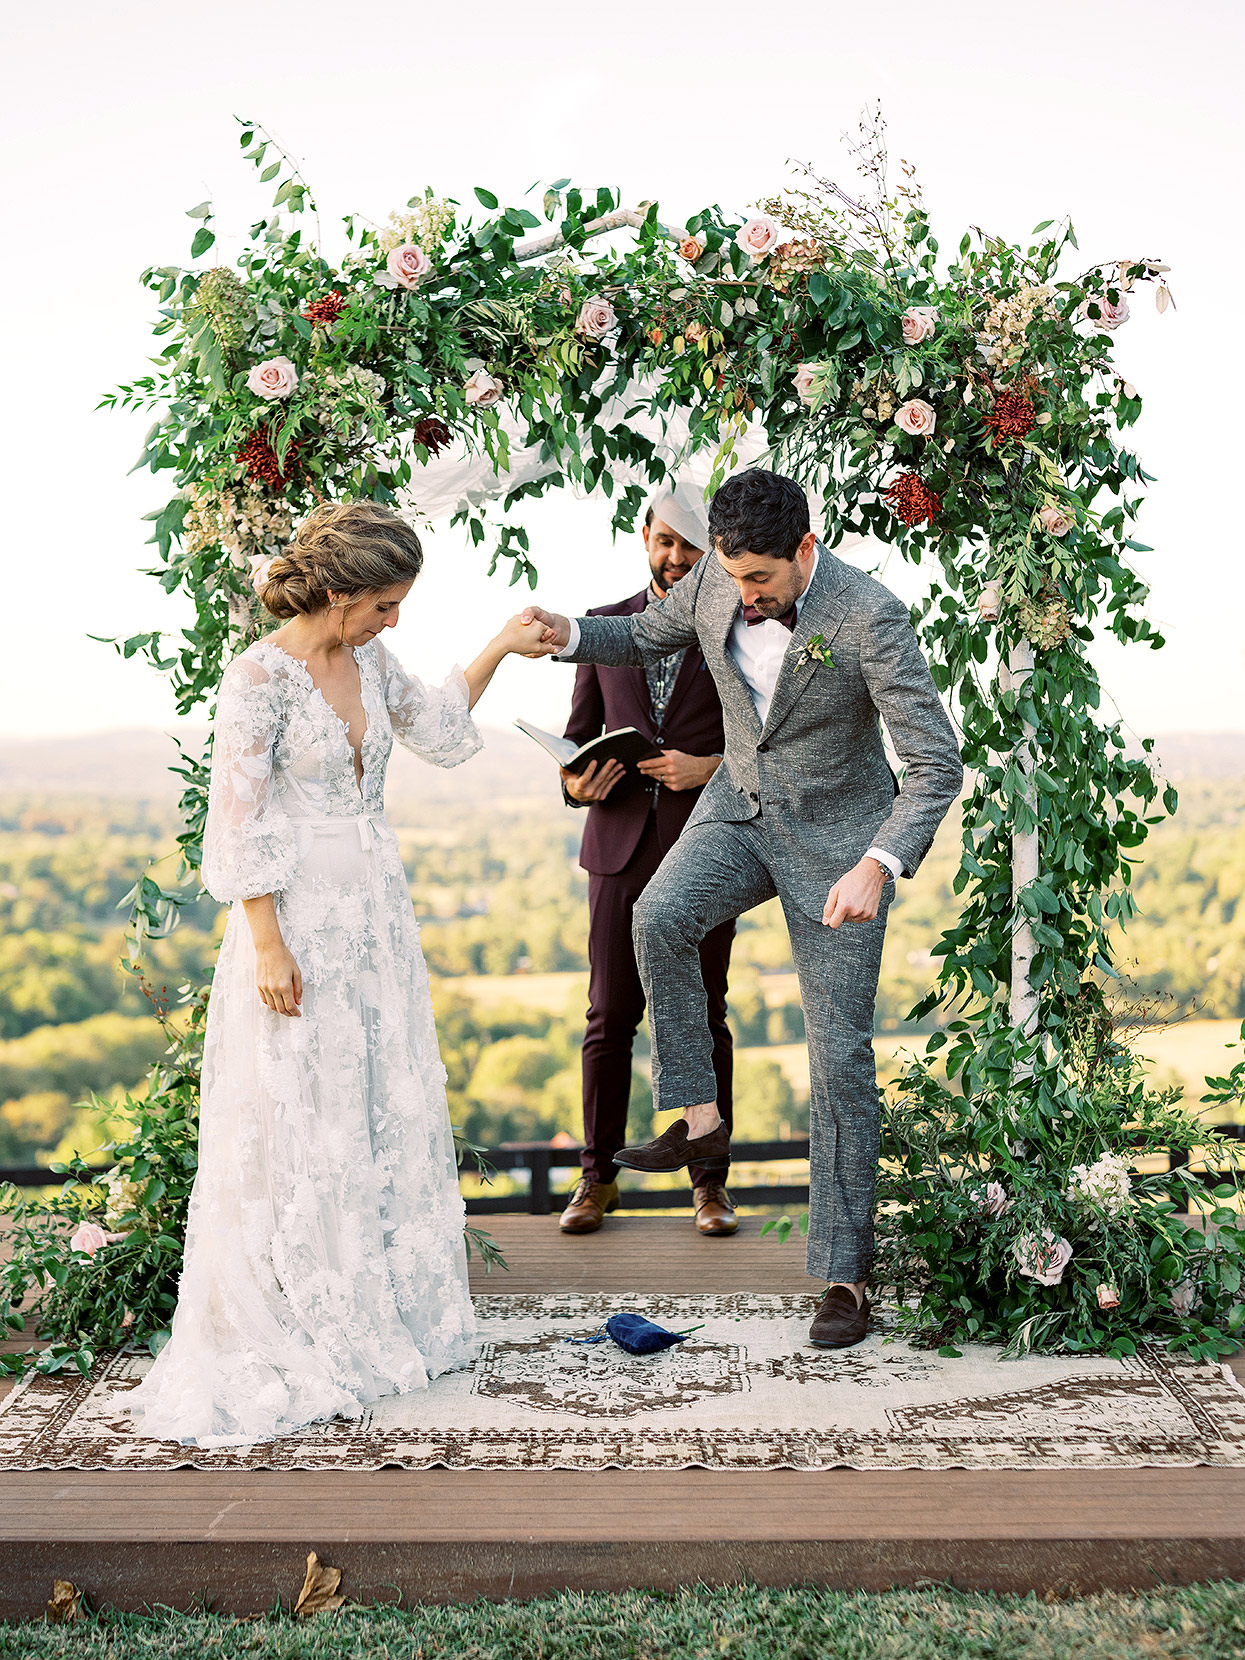 Claire and Dan's outdoor ceremony with groom stomping glass